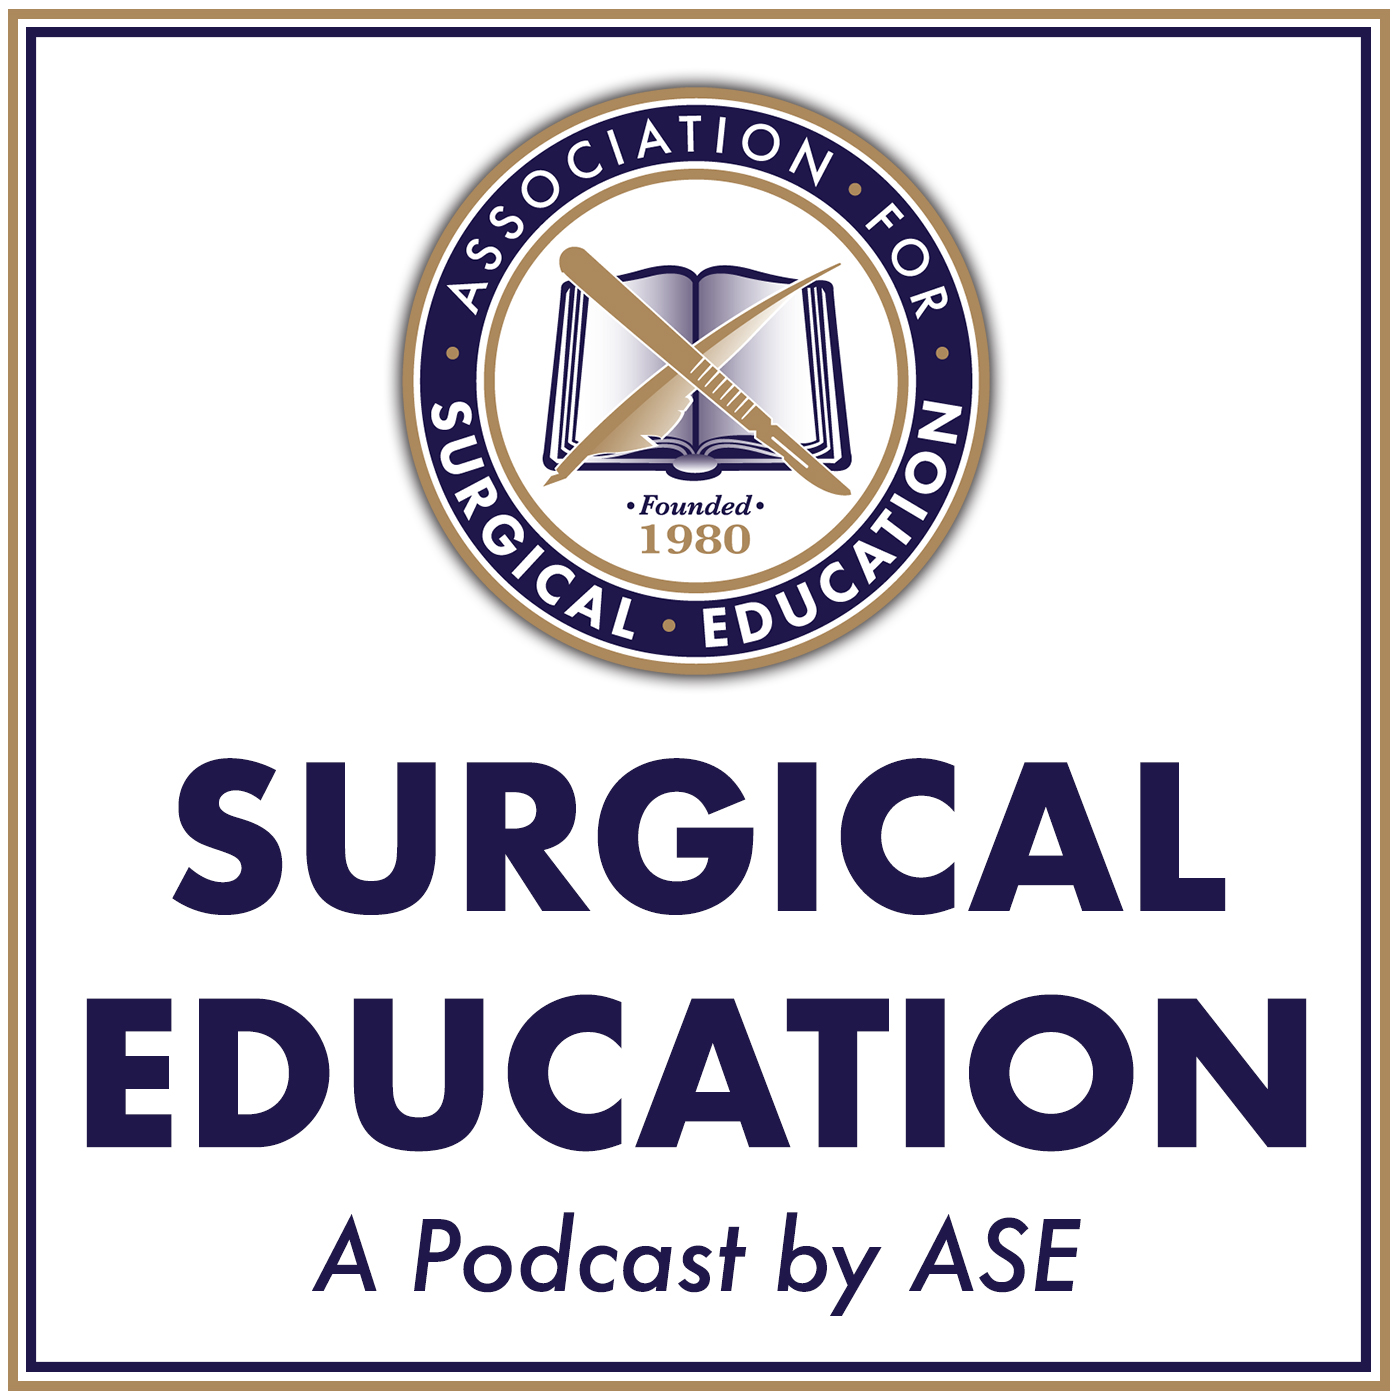 The Association for Surgical Education Podcast